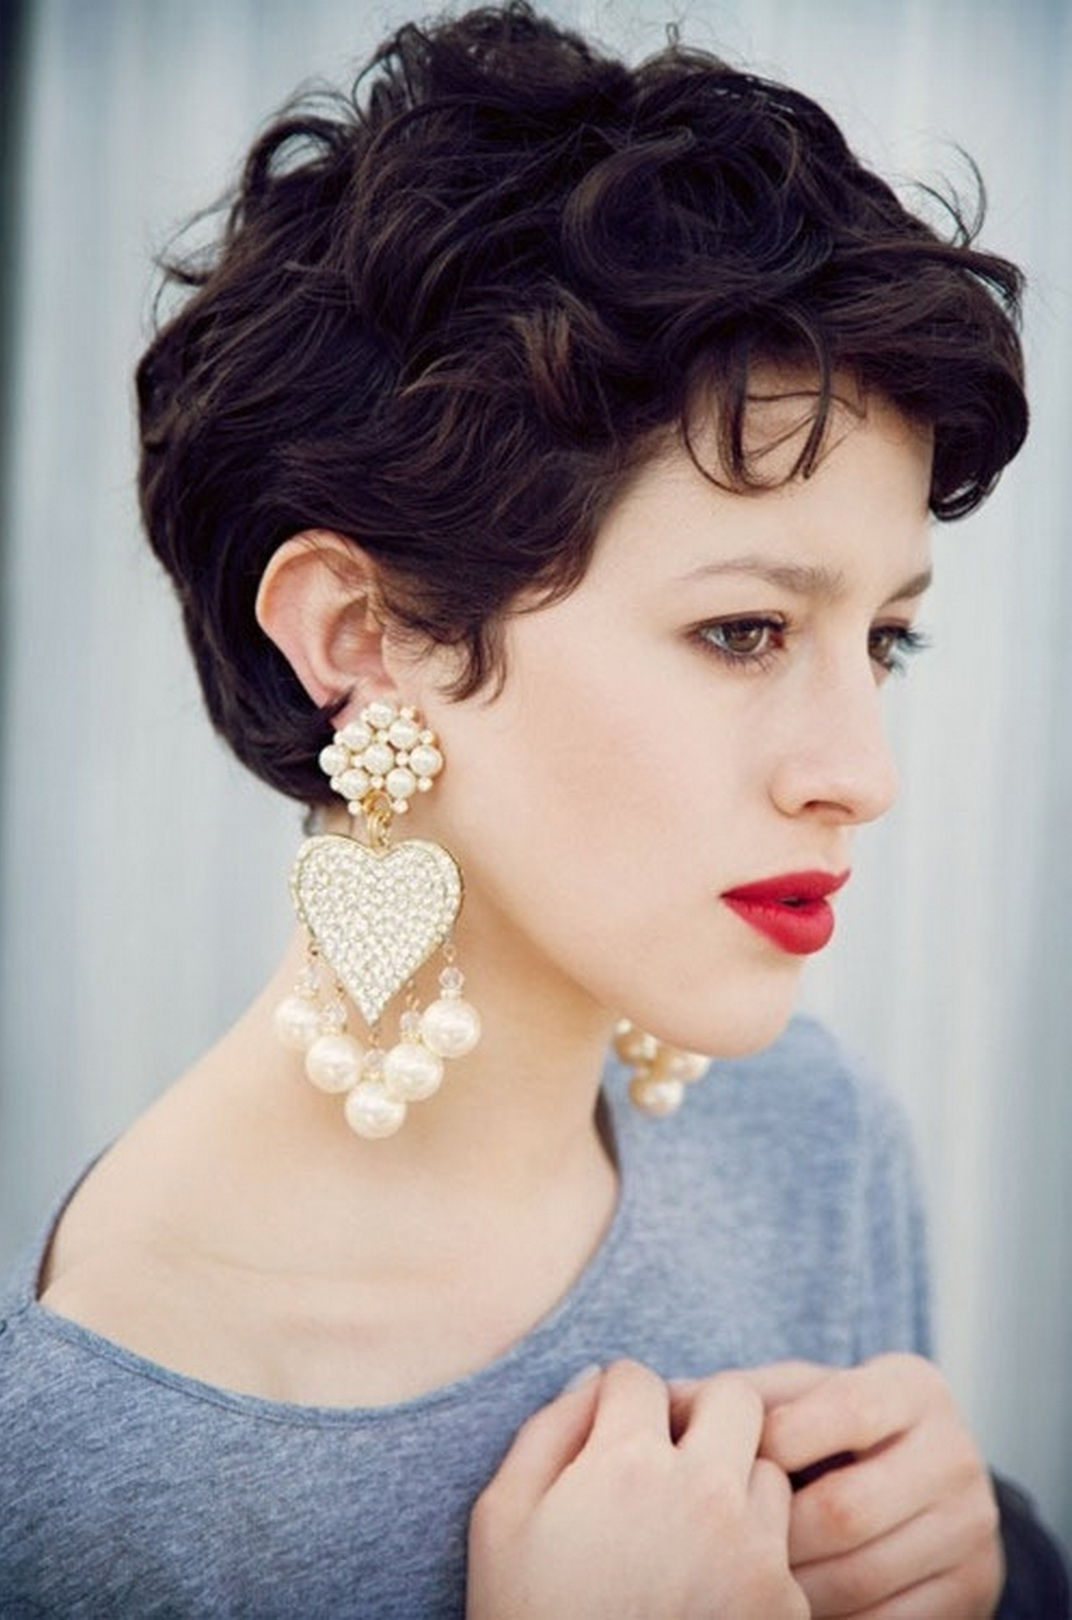 Pixie Haircut Wavy Hair Pixie Hairstyles For Thick Hair Women Within Most Recently Thick Pixie Hairstyles (View 11 of 15)